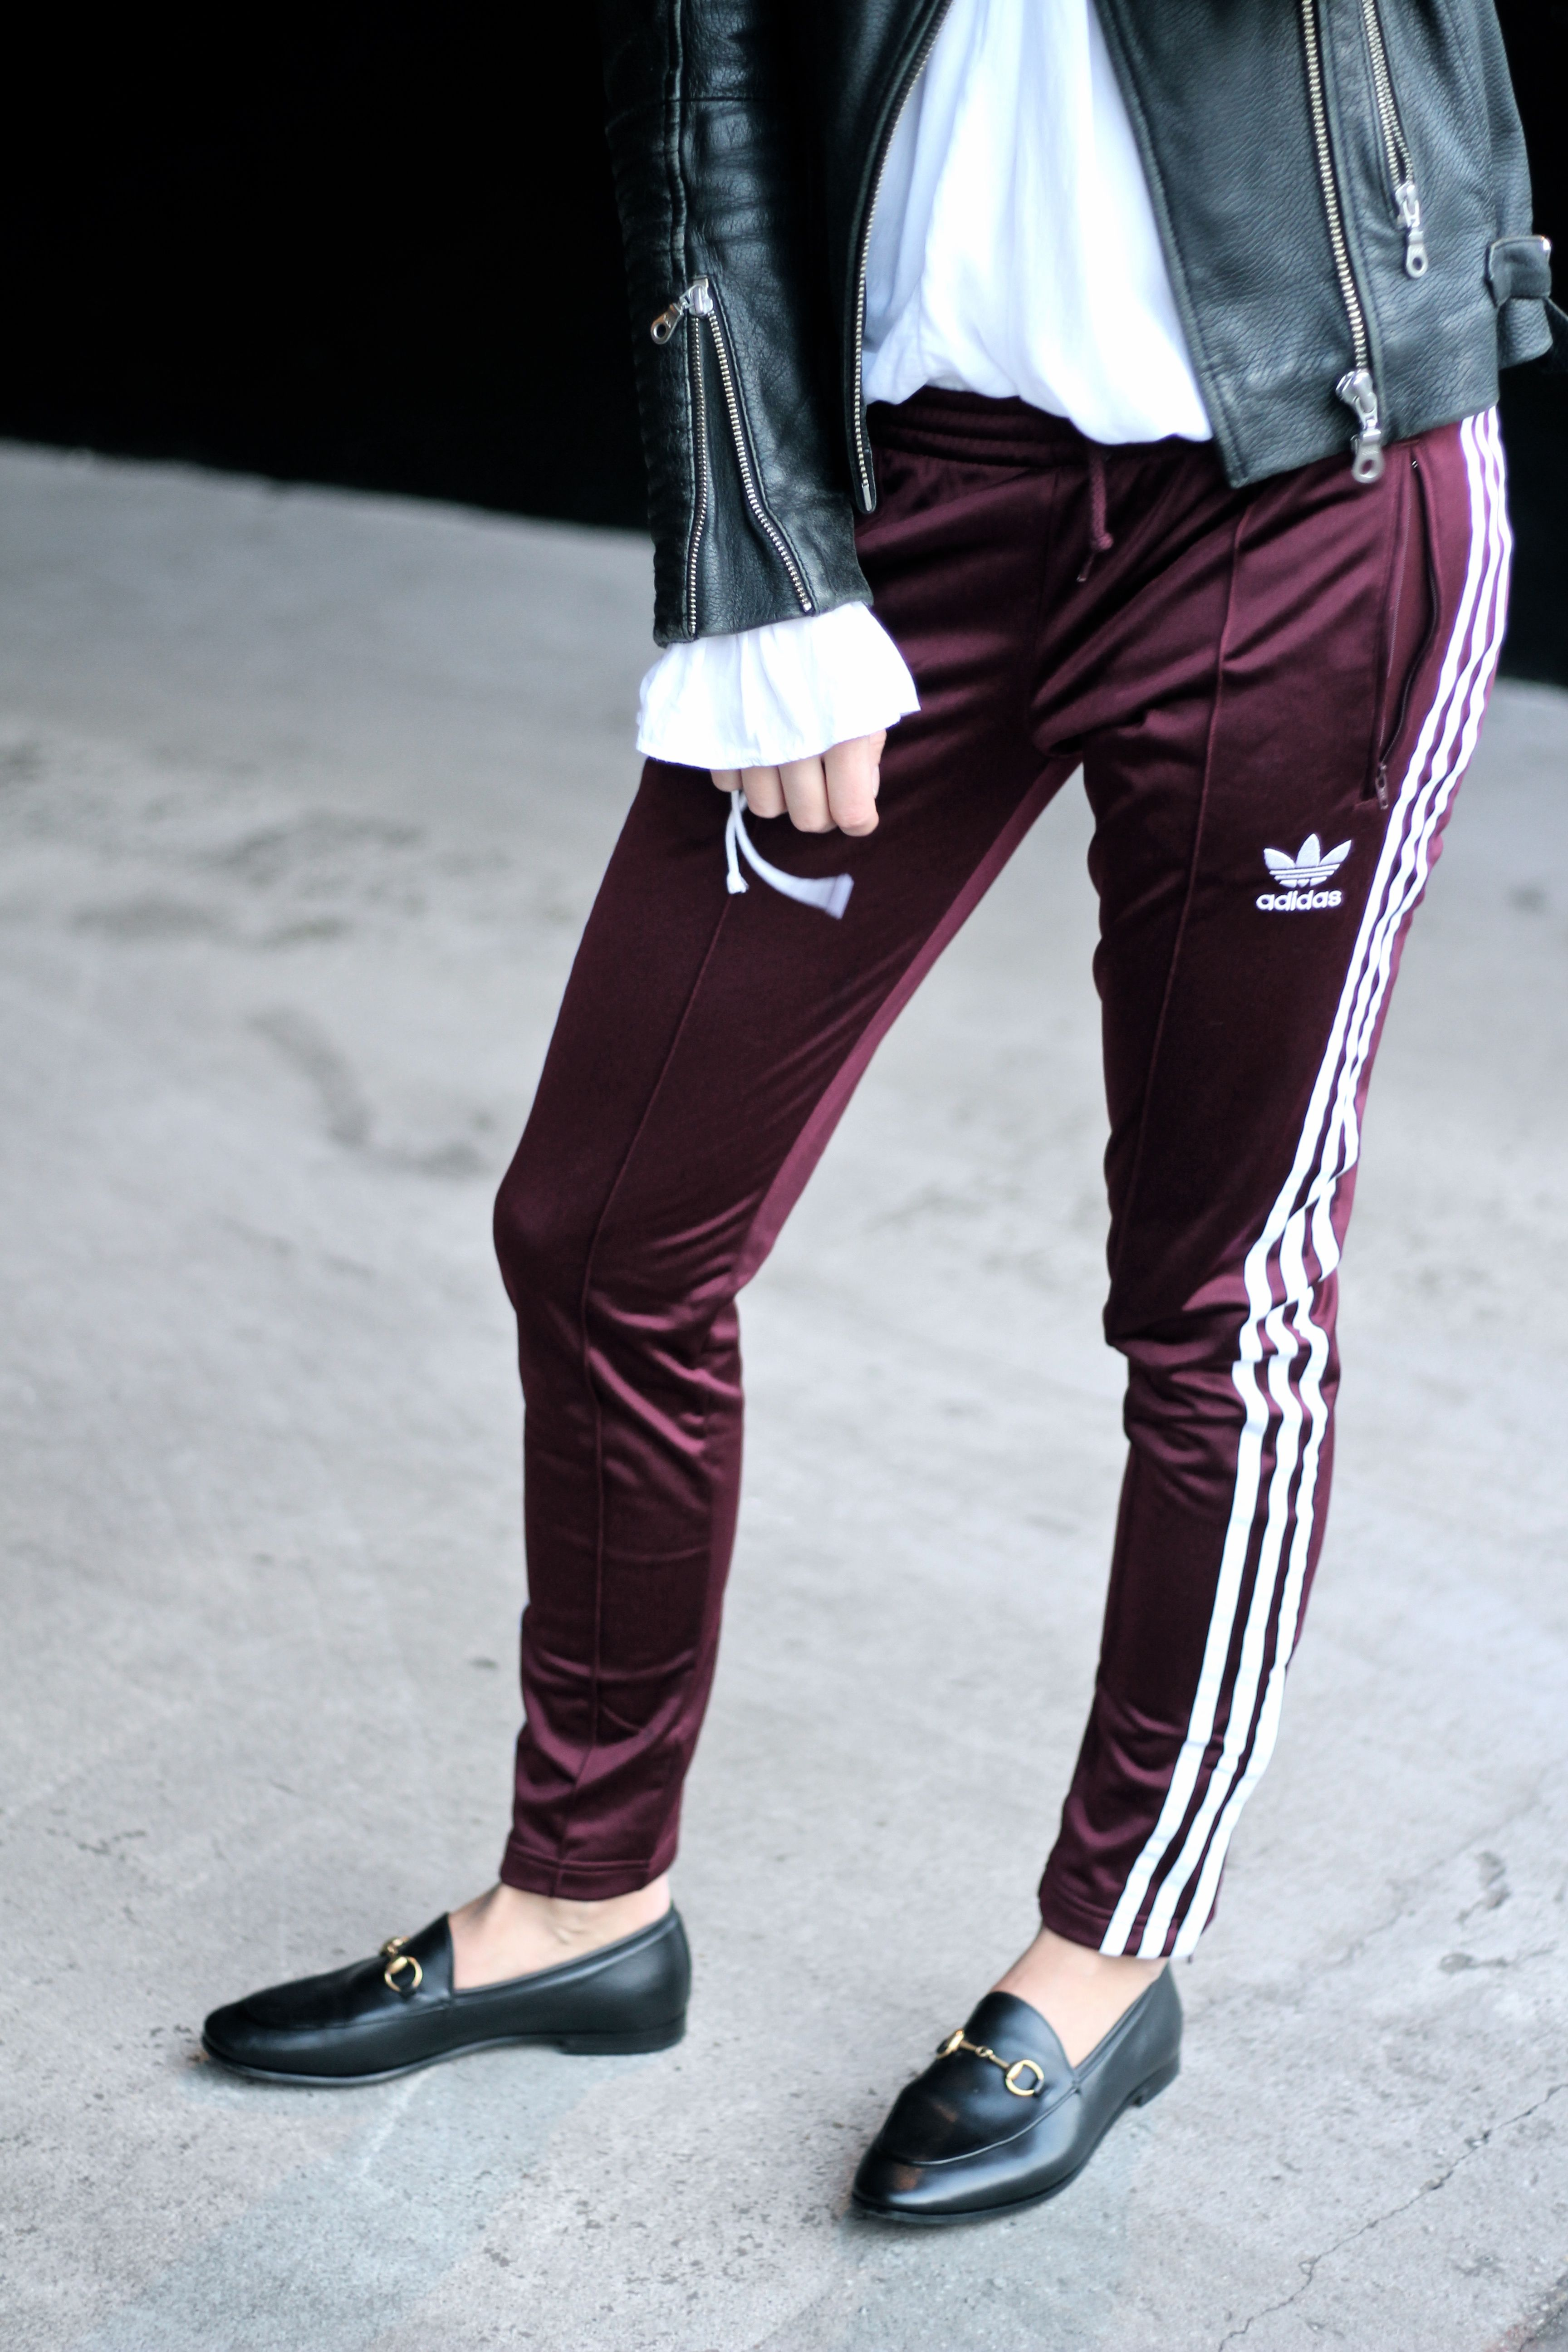 Gucci jordaan loafers mixed with Adidas burgundy sports pants